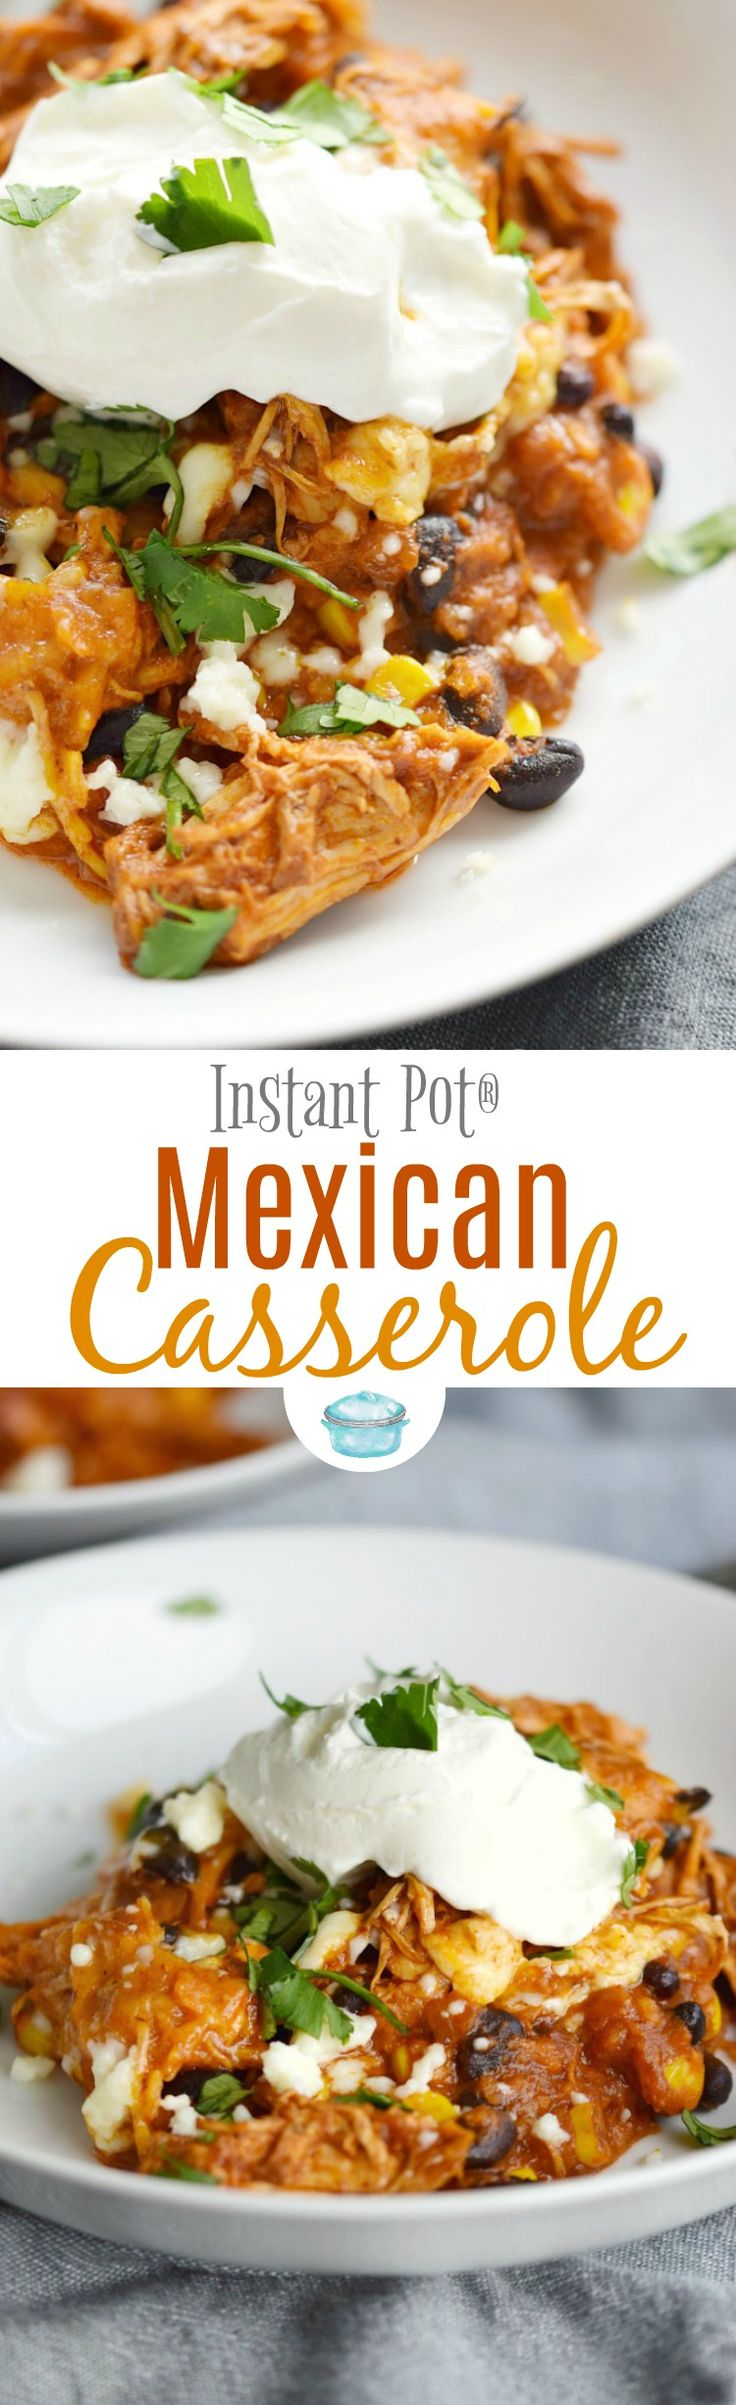 This easy and delicious Instant Pot Mexican Casserole will make the whole family smile It tastes just like Chicken Enchiladas without all the work! © COOKING WITH CURLS